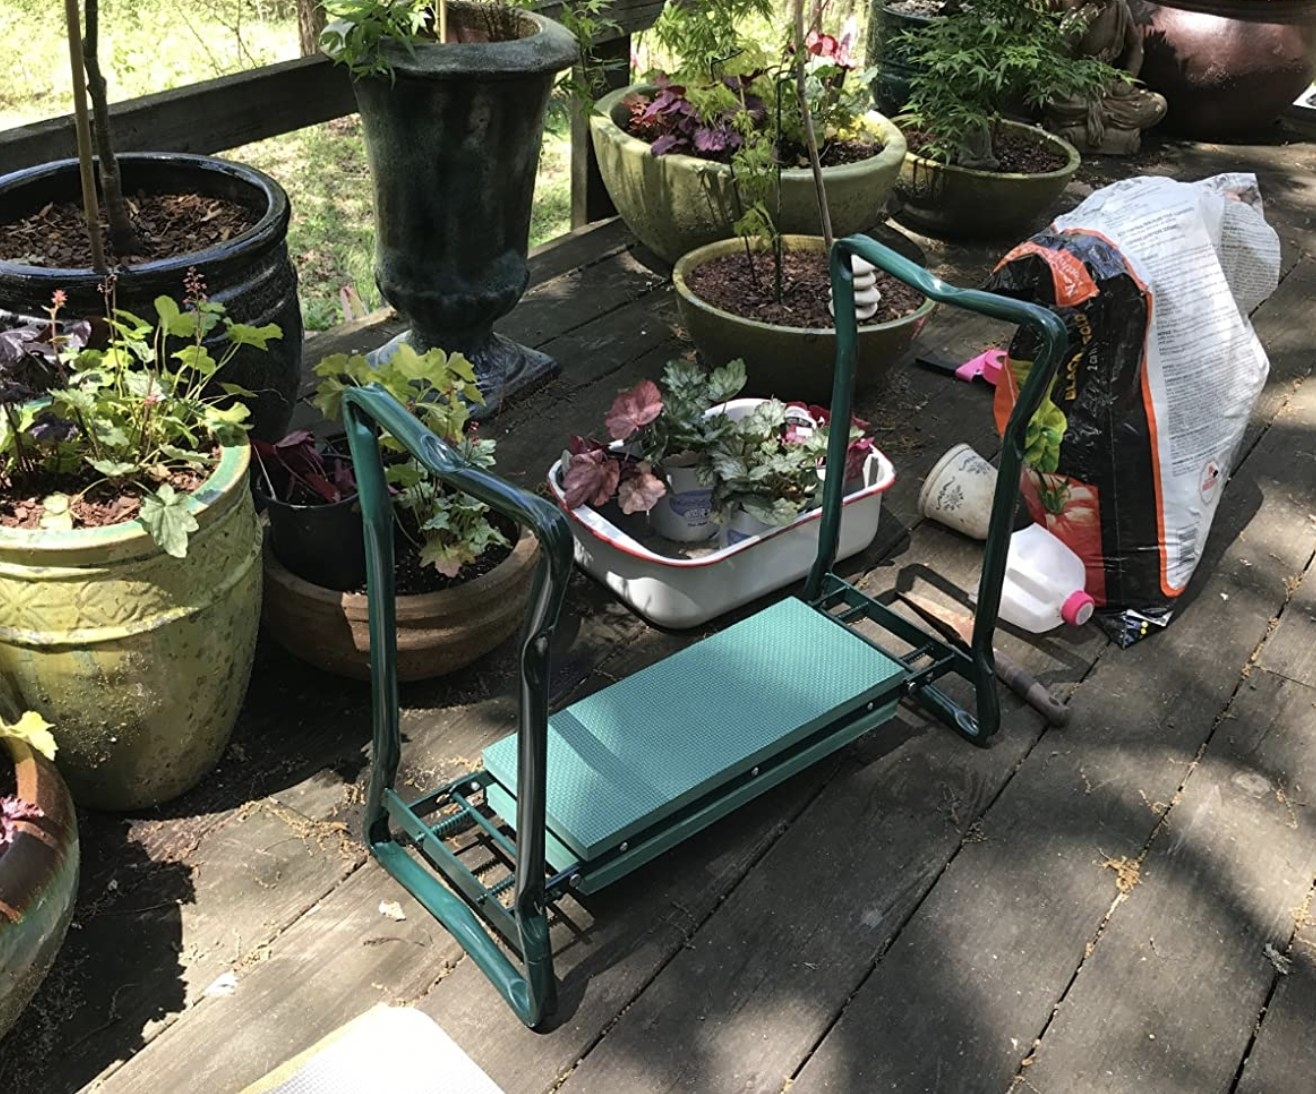 a kneeler bench for gardening next to potted plants